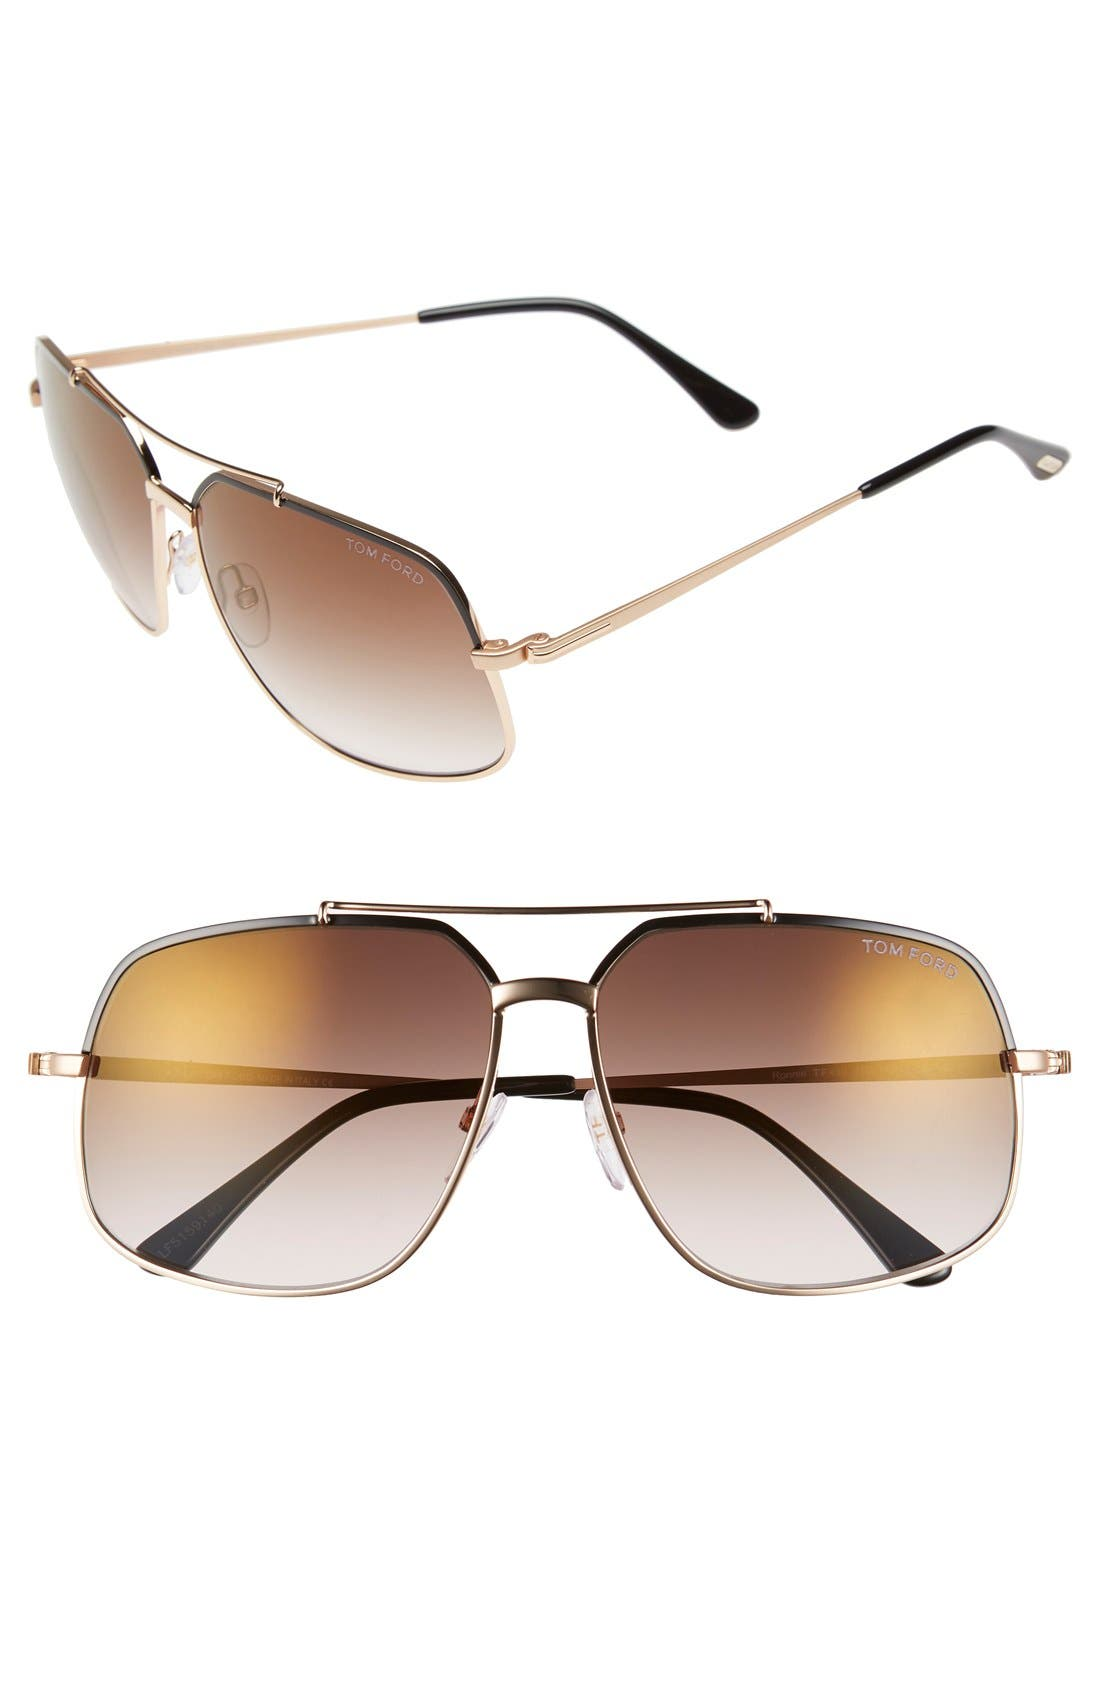 Main Image - Tom Ford 'Ronnie' 60mm Aviator Sunglasses